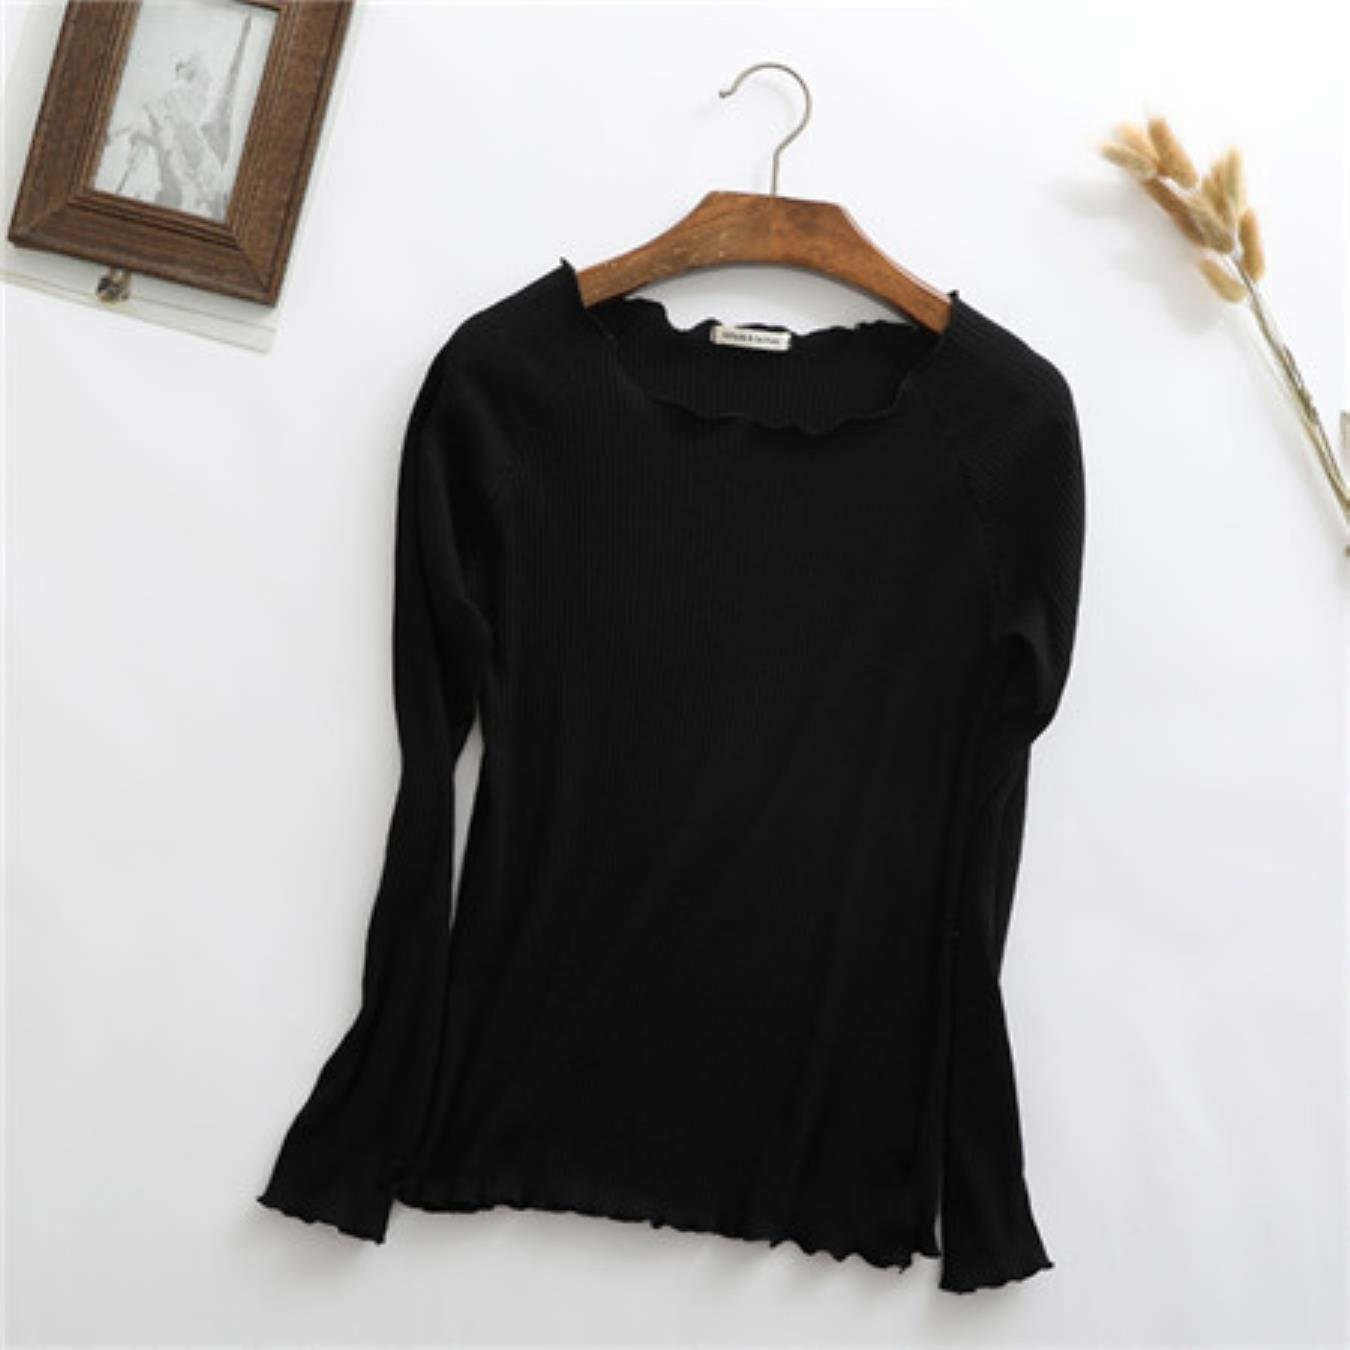 Cotton Spring Sweet Ruffles O Neck Knitted Long Sleeve T-Shirt Basic Tee Casual White Stretch T Shirt Autumn Slim Tops